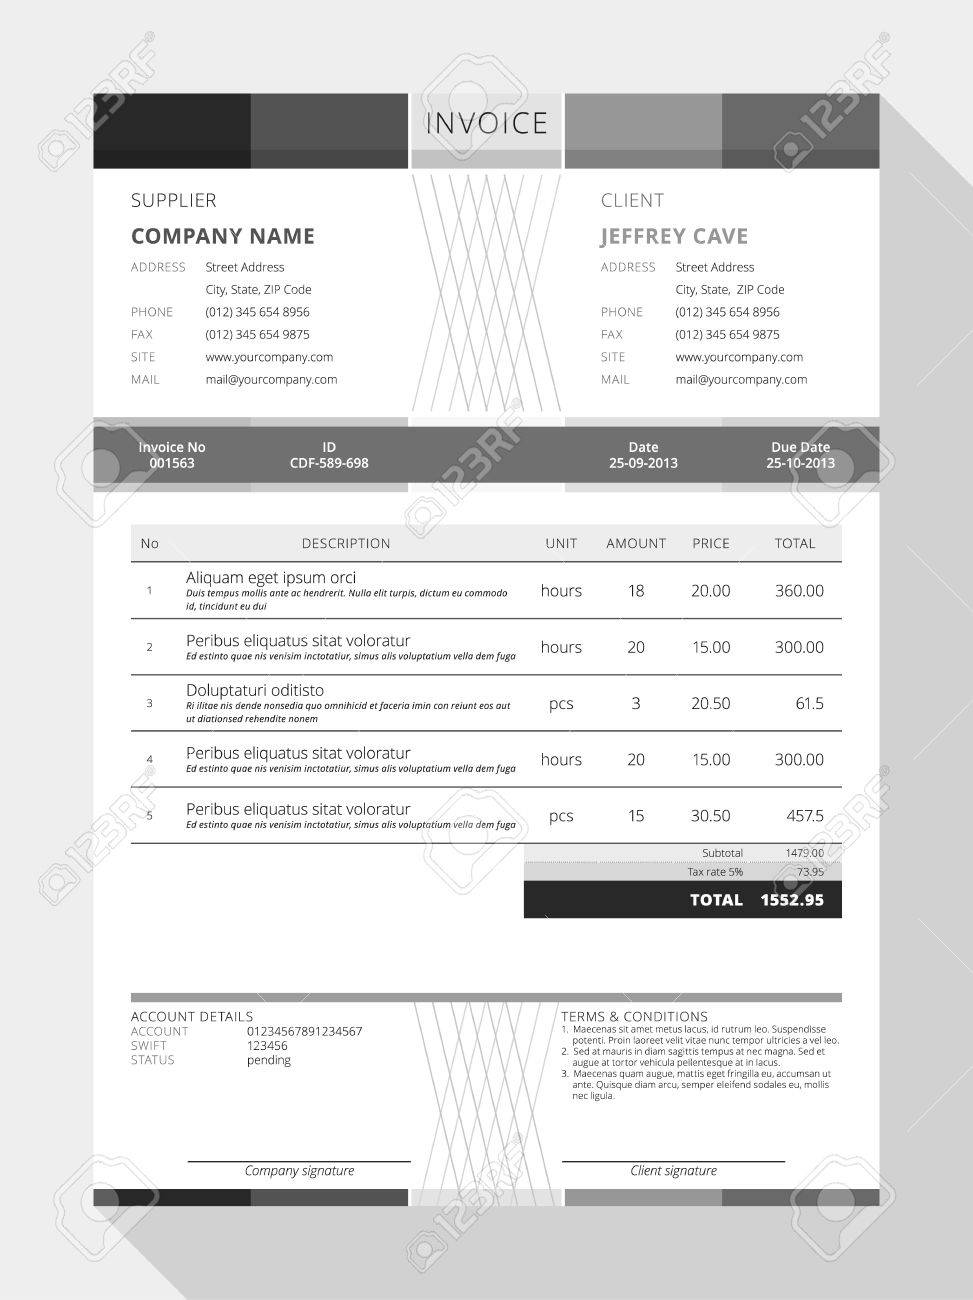 Reliefworkersus  Remarkable Design An Invoice  Professional Graphic Design Invoice  With Glamorous Vector Customizable Invoice Form Template Design Vector   Design An Invoice With Amazing Property Tax Receipt Also Lost Receipt Form In Addition Receipt Spike And How To Get A Read Receipt In Gmail As Well As Please Confirm Upon Receipt Additionally Jackson County Personal Property Tax Receipt From Happytomco With Reliefworkersus  Glamorous Design An Invoice  Professional Graphic Design Invoice  With Amazing Vector Customizable Invoice Form Template Design Vector   Design An Invoice And Remarkable Property Tax Receipt Also Lost Receipt Form In Addition Receipt Spike From Happytomco